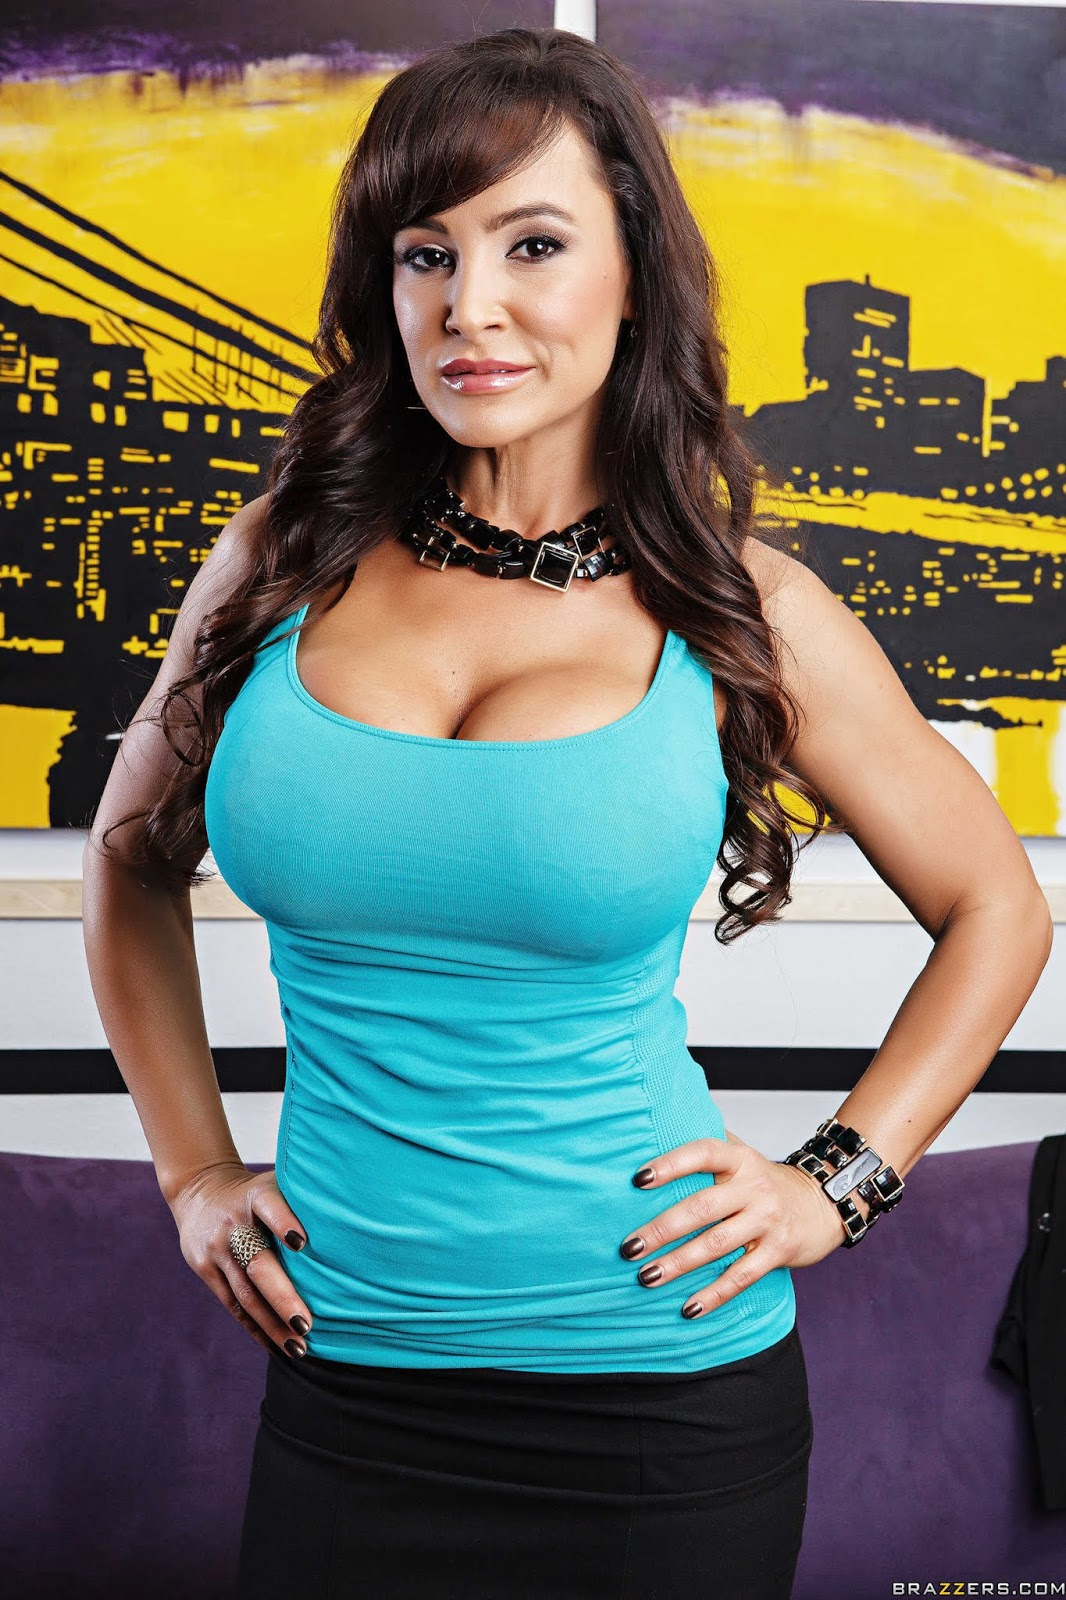 Lisa Ann & Ava Addams : Busted ## BRAZZERS